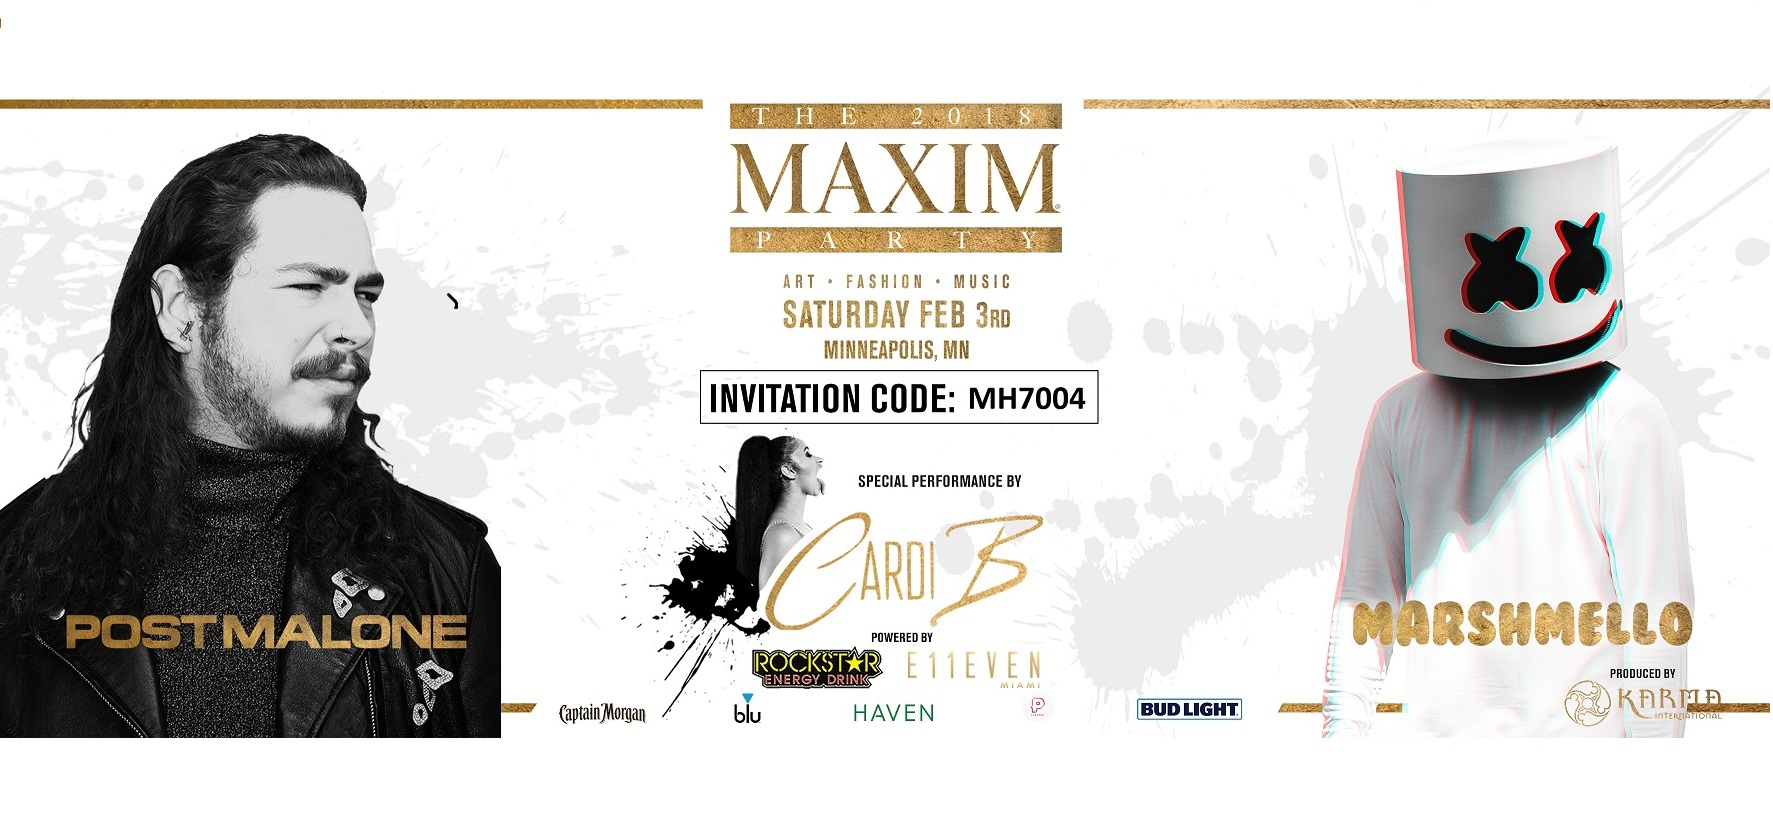 Best Super Bowl Tickets and Parties. The 2018 Maxim Party - The Best Super Bowl Party in Minneapolis for Super Bowl 52 Weekend - New England Patriots vs. Philedelphia Eagles at U.S. Bank Stadium. Purchase Official Tickets and VIP Tables by Visiting VIPExclusives.com. Use Maxim Super Bowl Party Invitation Code: MH7004 for the Guaranteed Lowest Price. Call 1-877-MAXIM-02 for Personal Service.